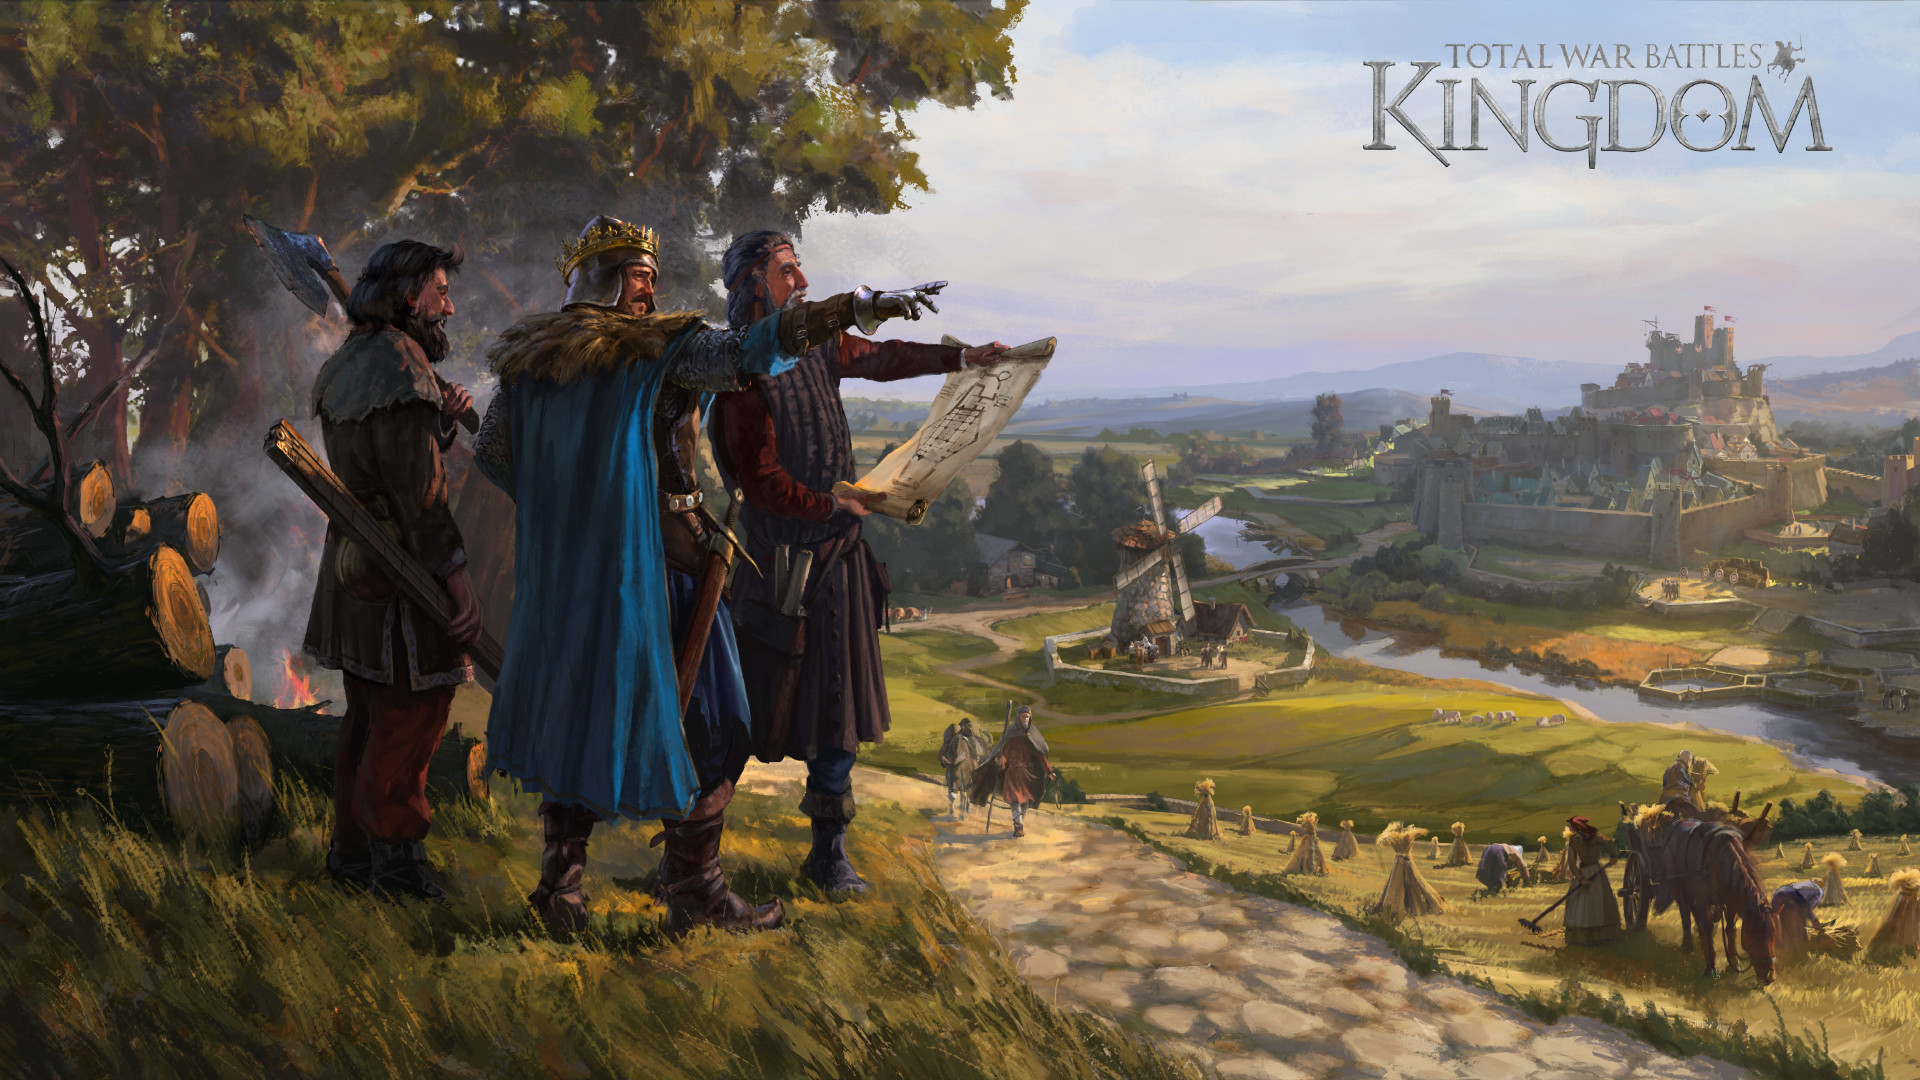 Vilius petrauskas twbk the life in the realm key art 1080p psd